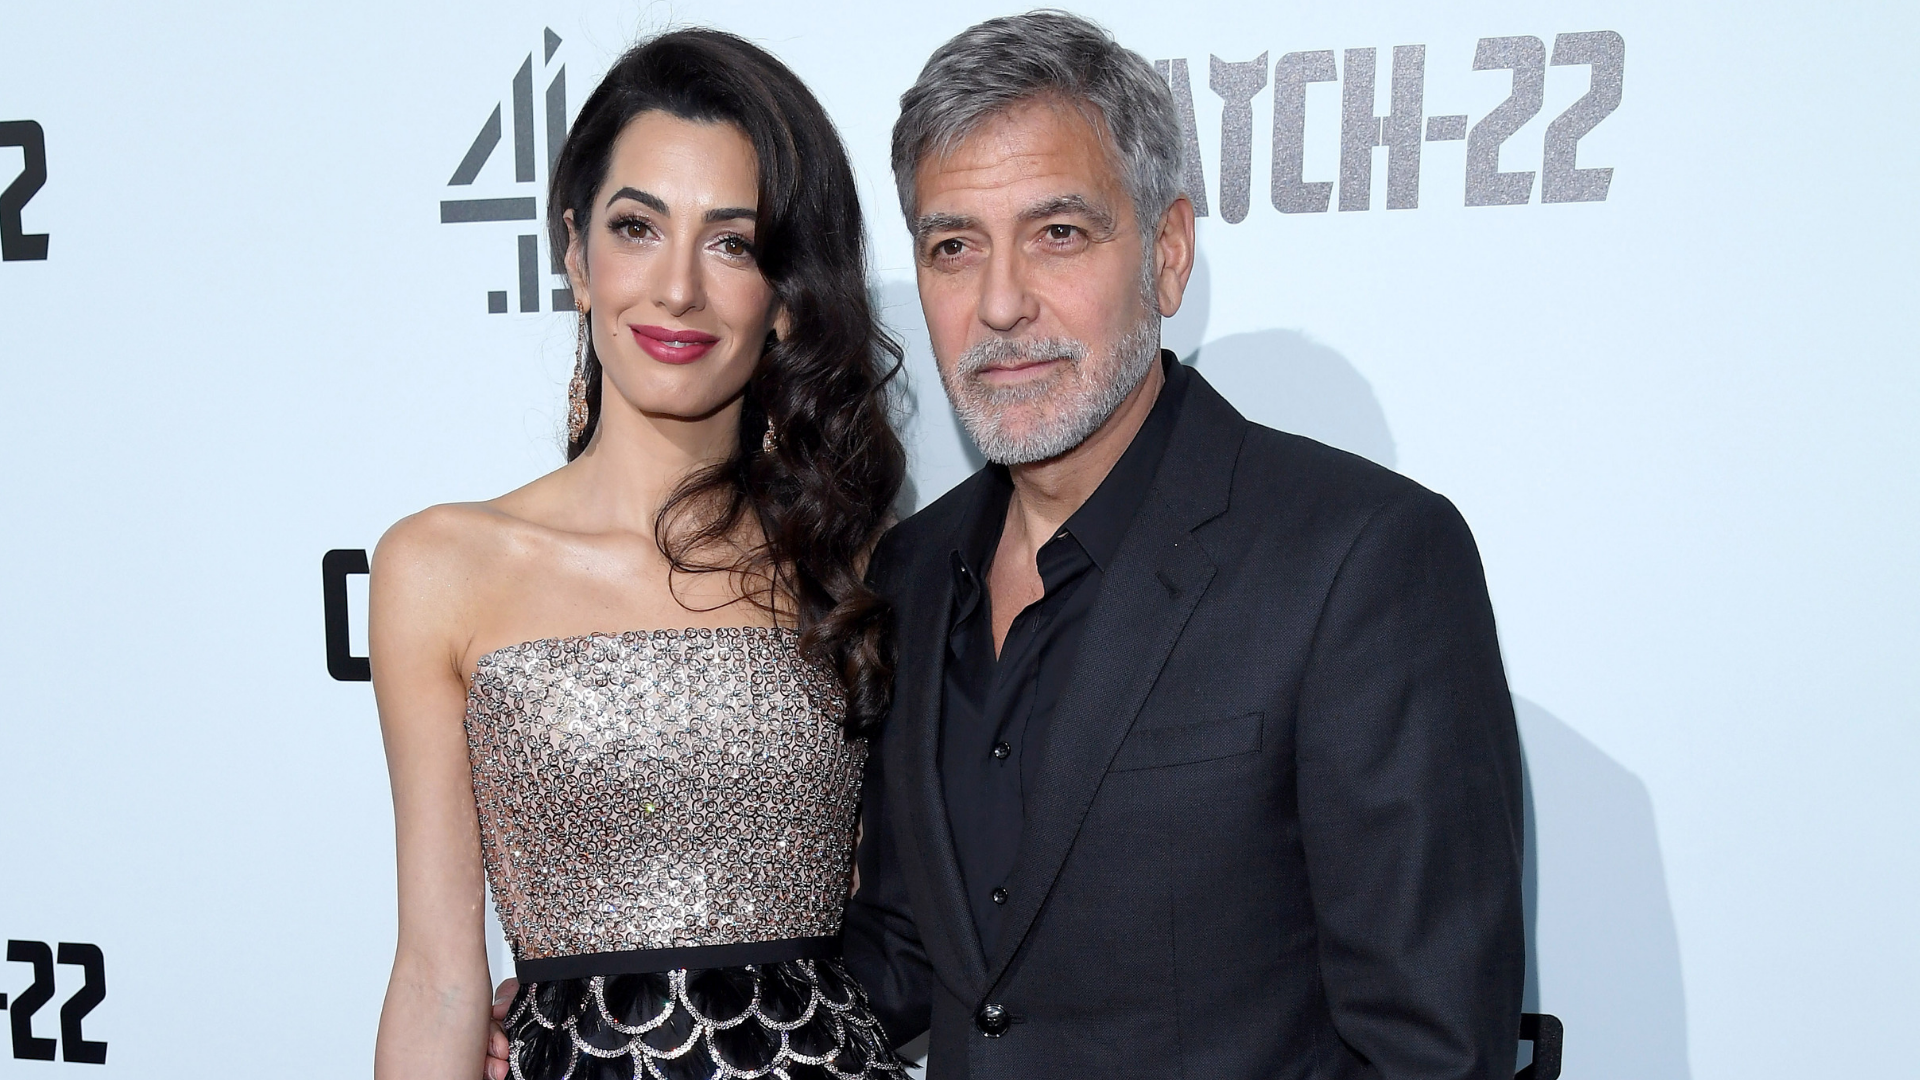 Amal Clooney Wows At The UK 'Catch-22' Premiere